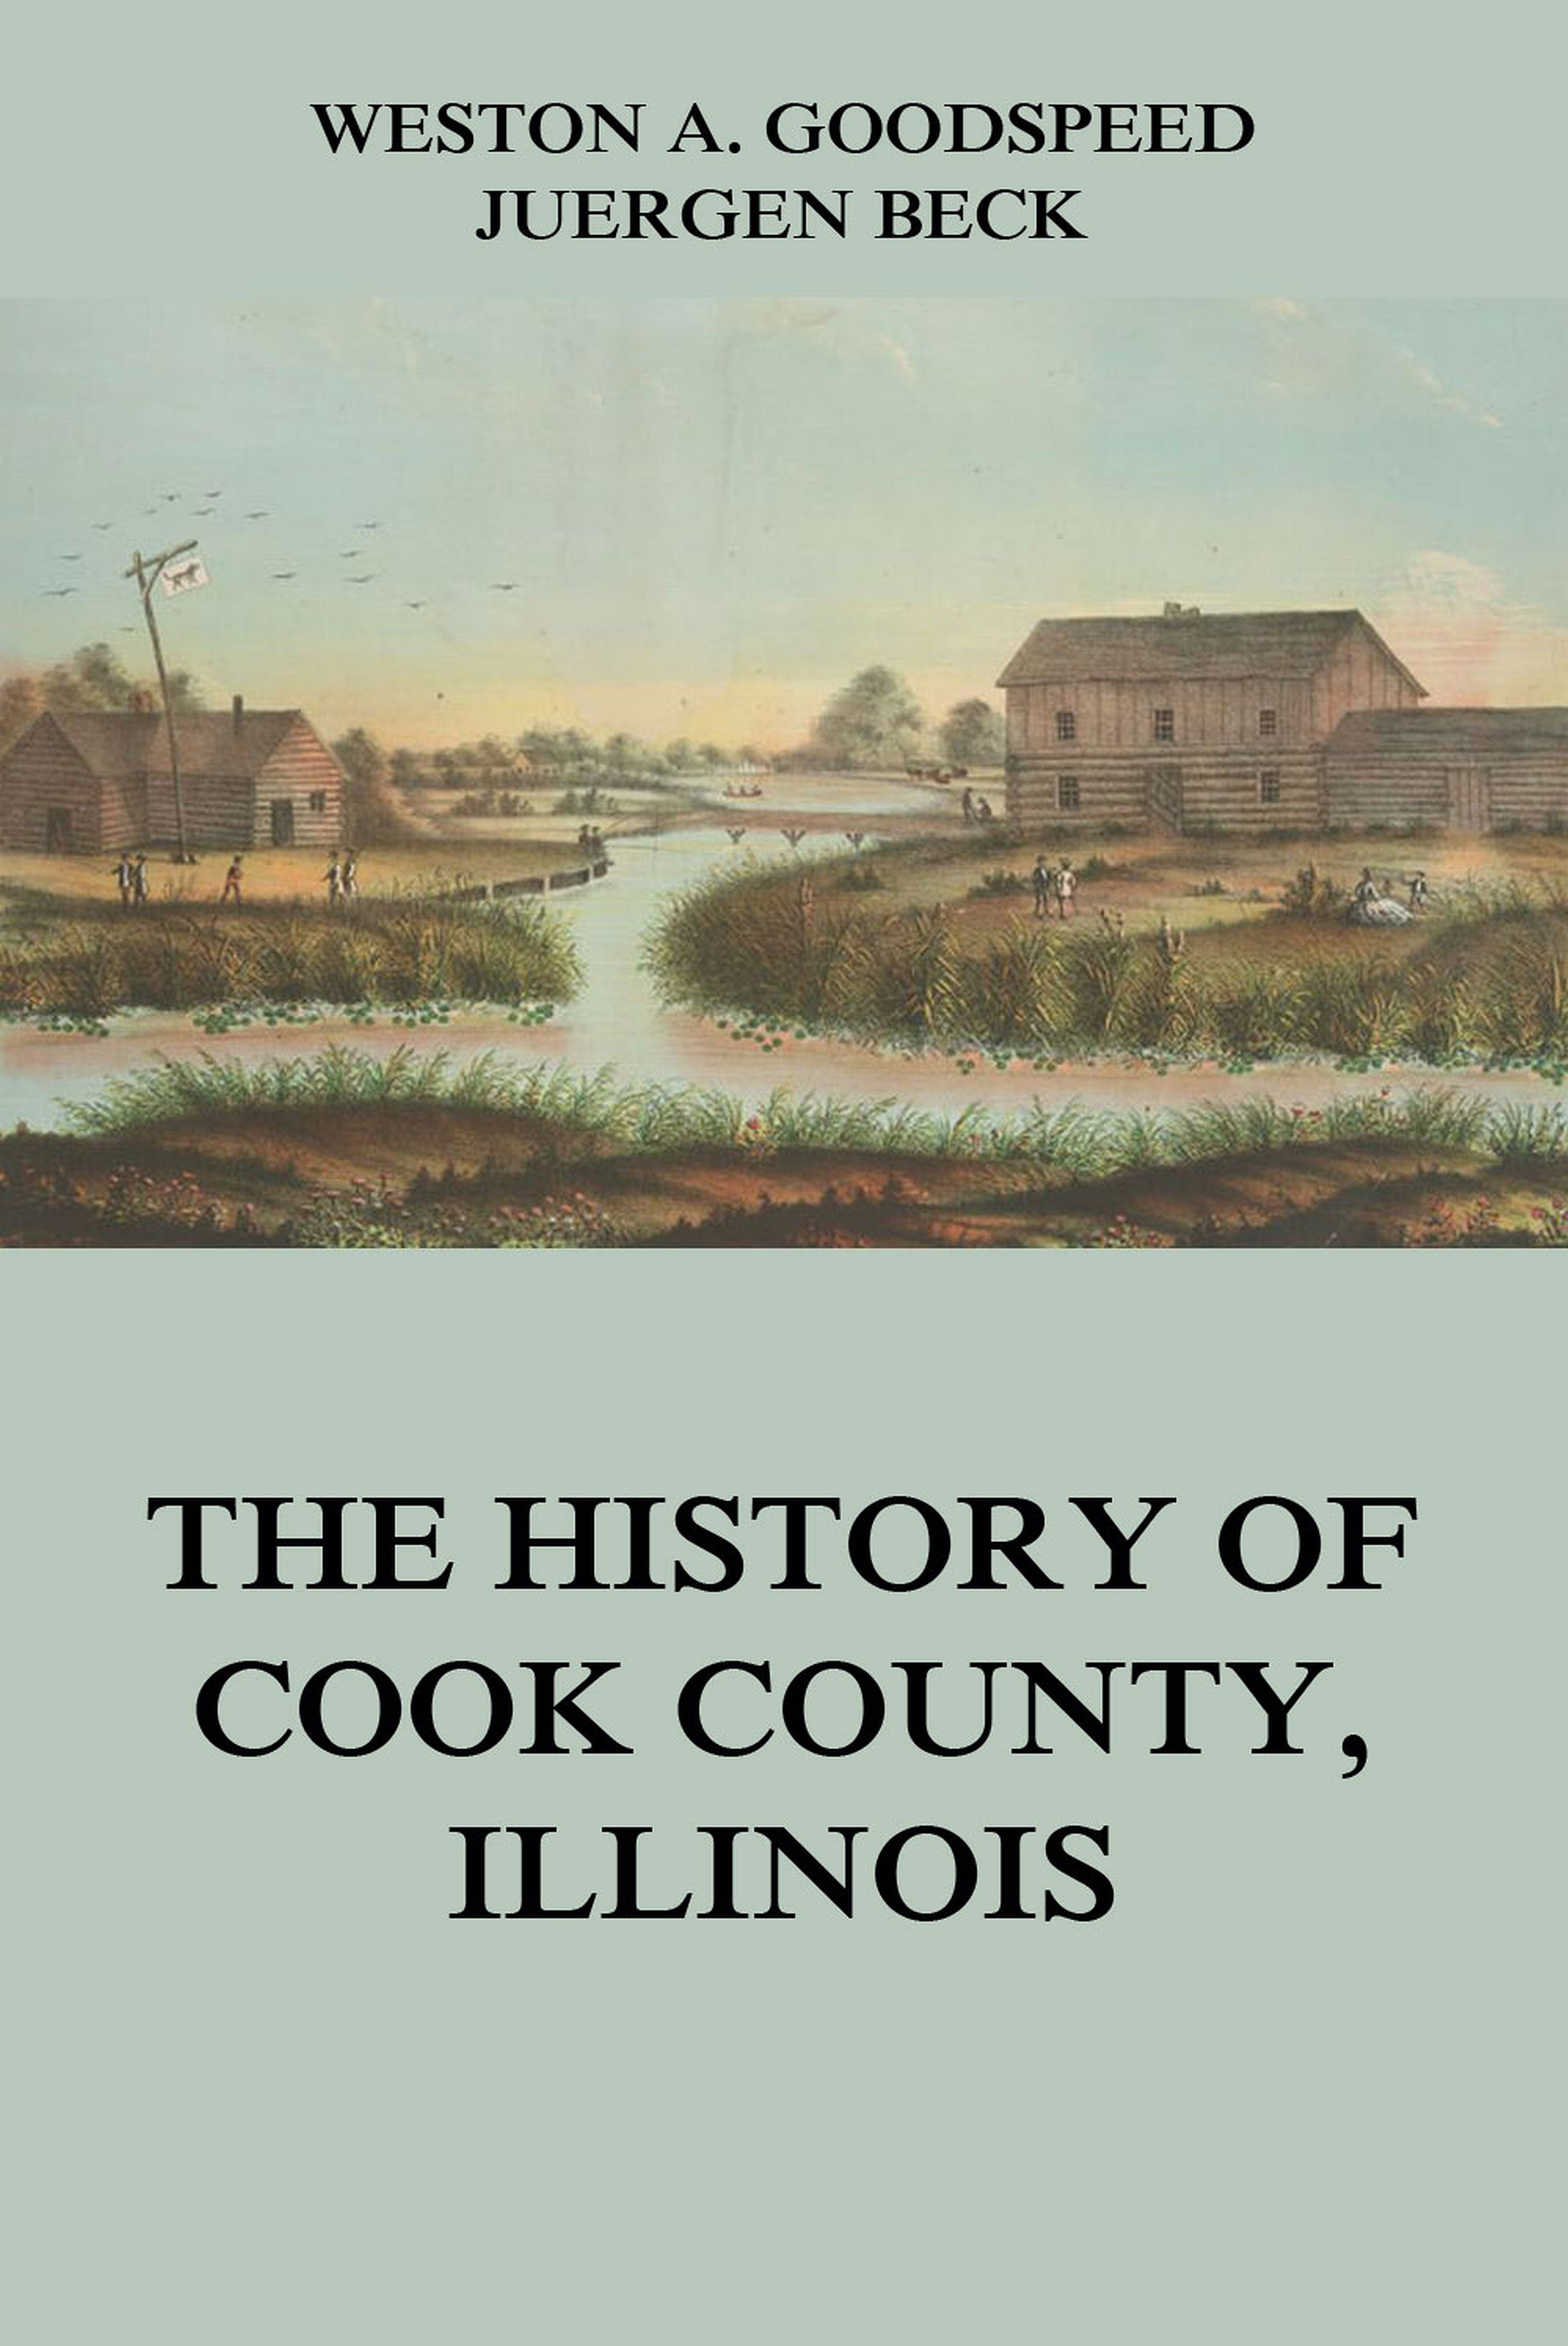 Weston A. Goodspeed The History of Cook County, Illinois jr john c mceldowney history of wetzel county west virginia